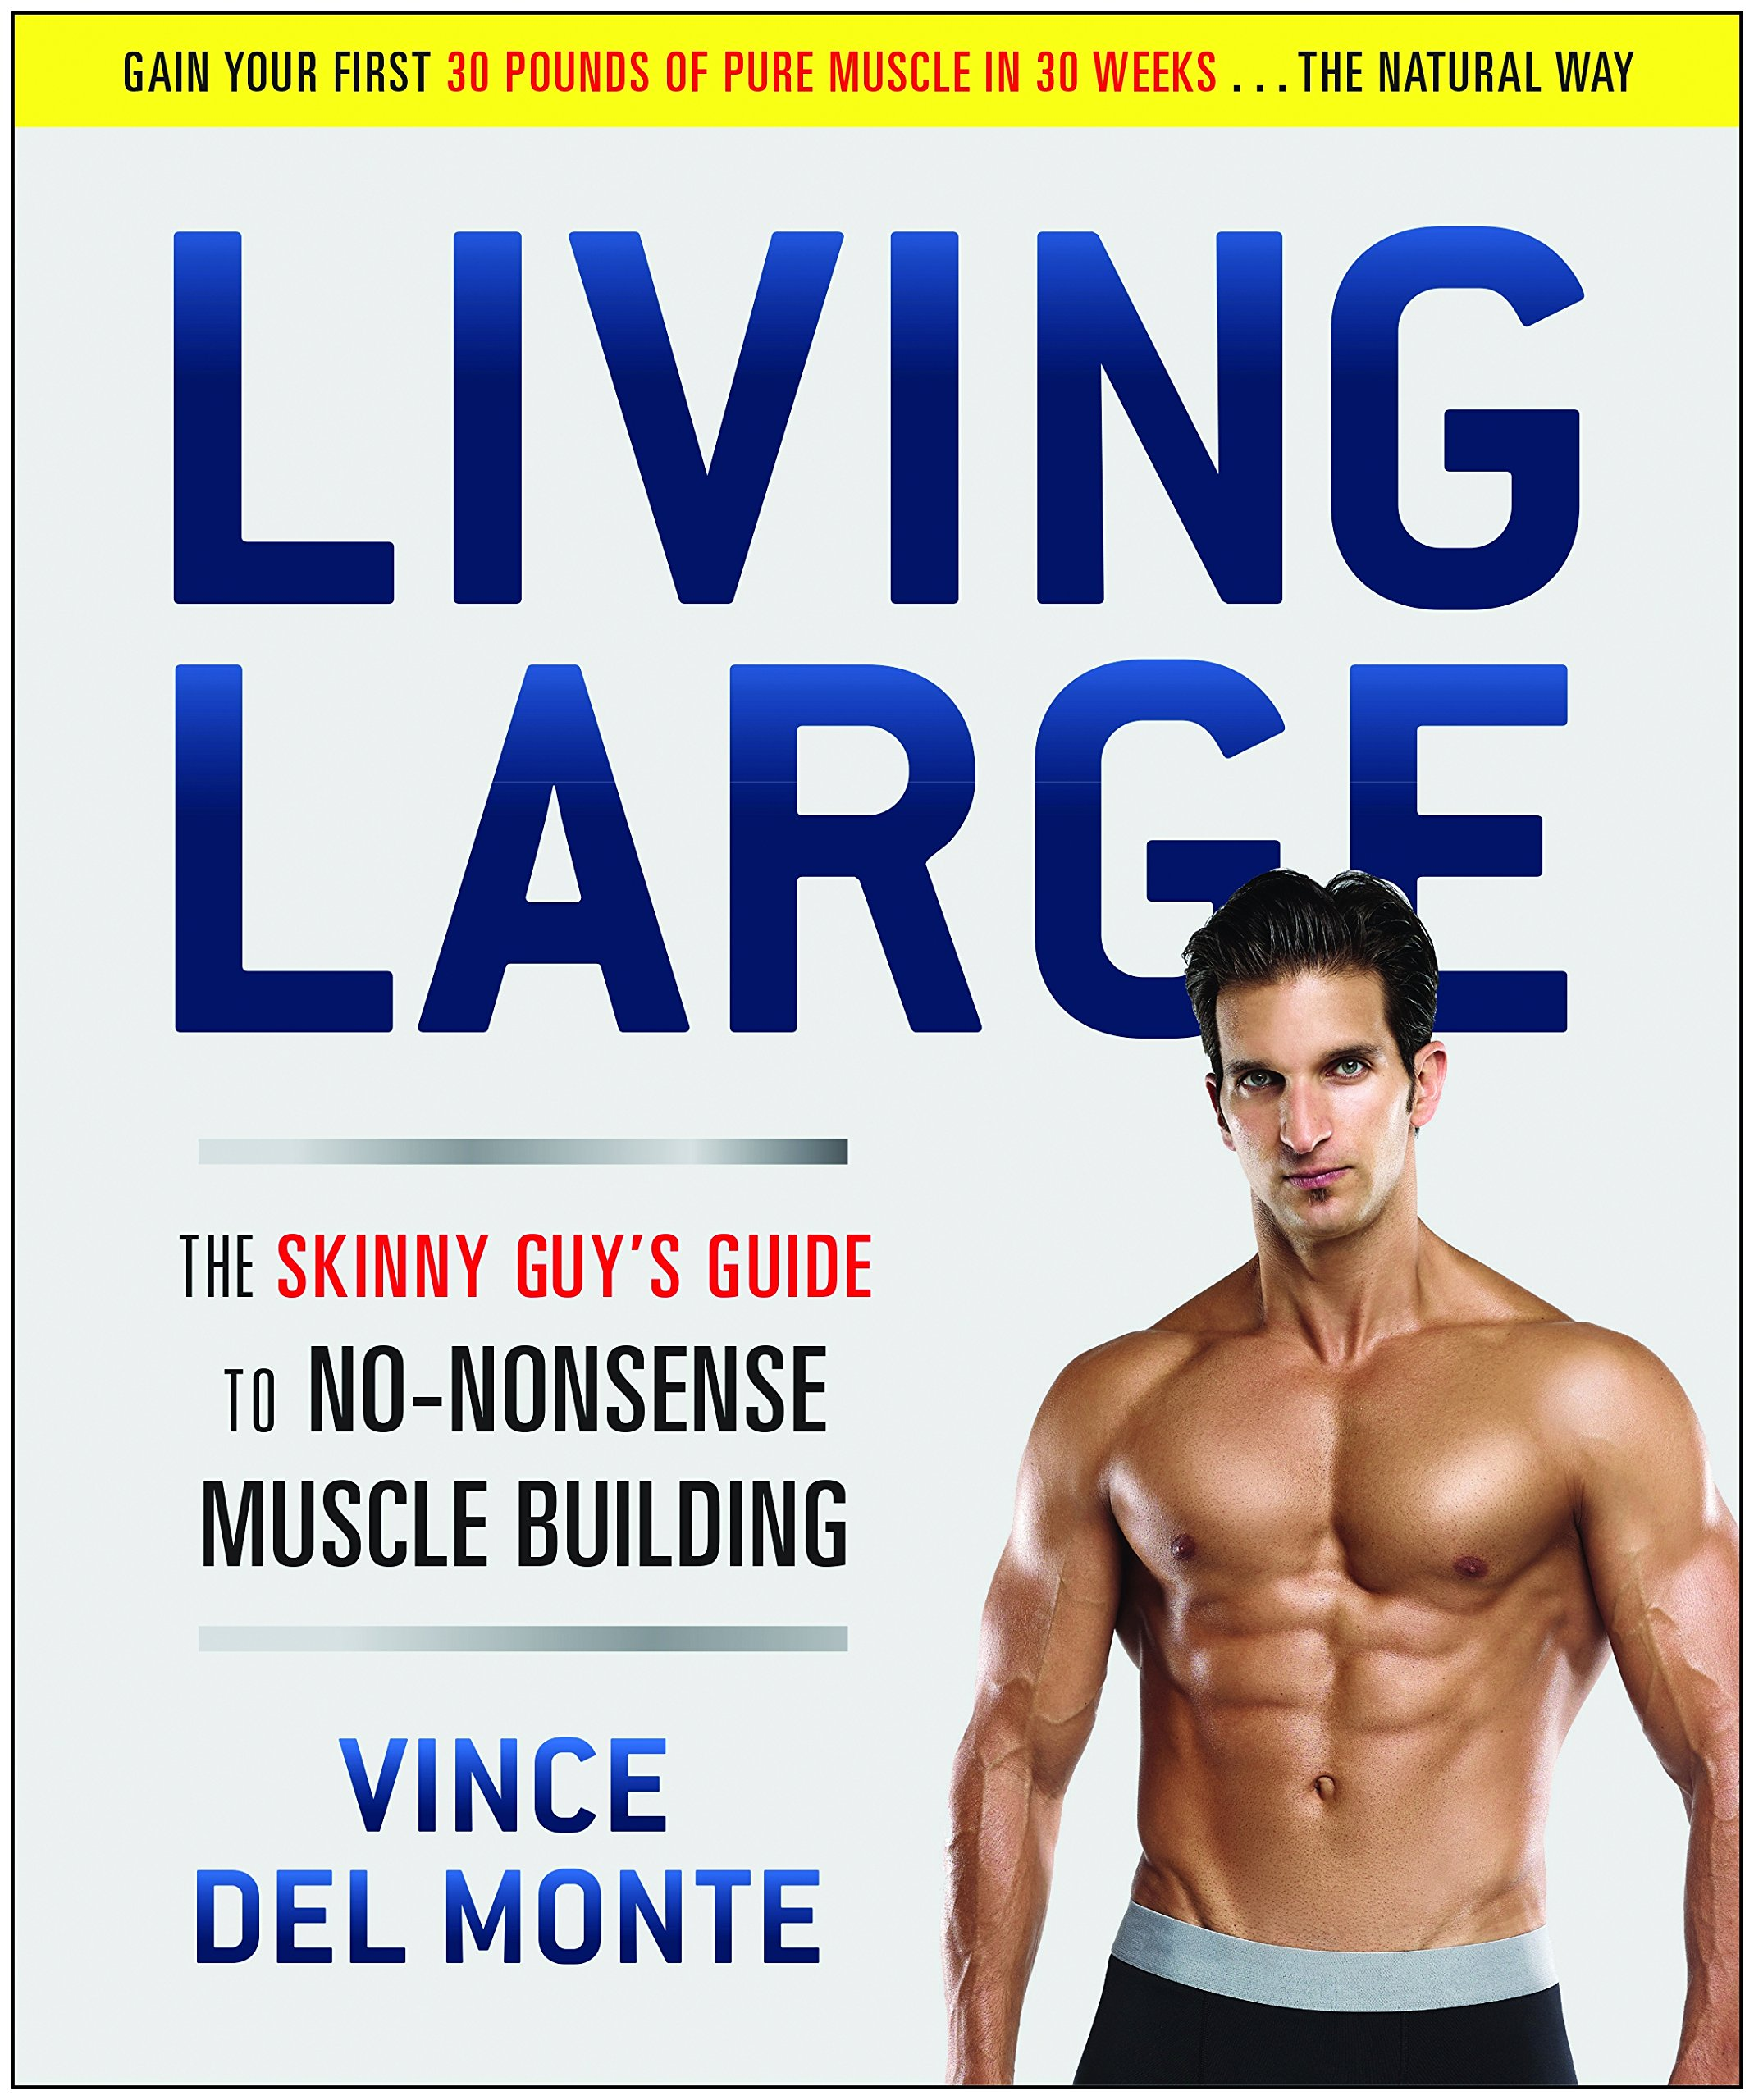 Image OfLiving Large: The Skinny Guy's Guide To No-Nonsense Muscle Building